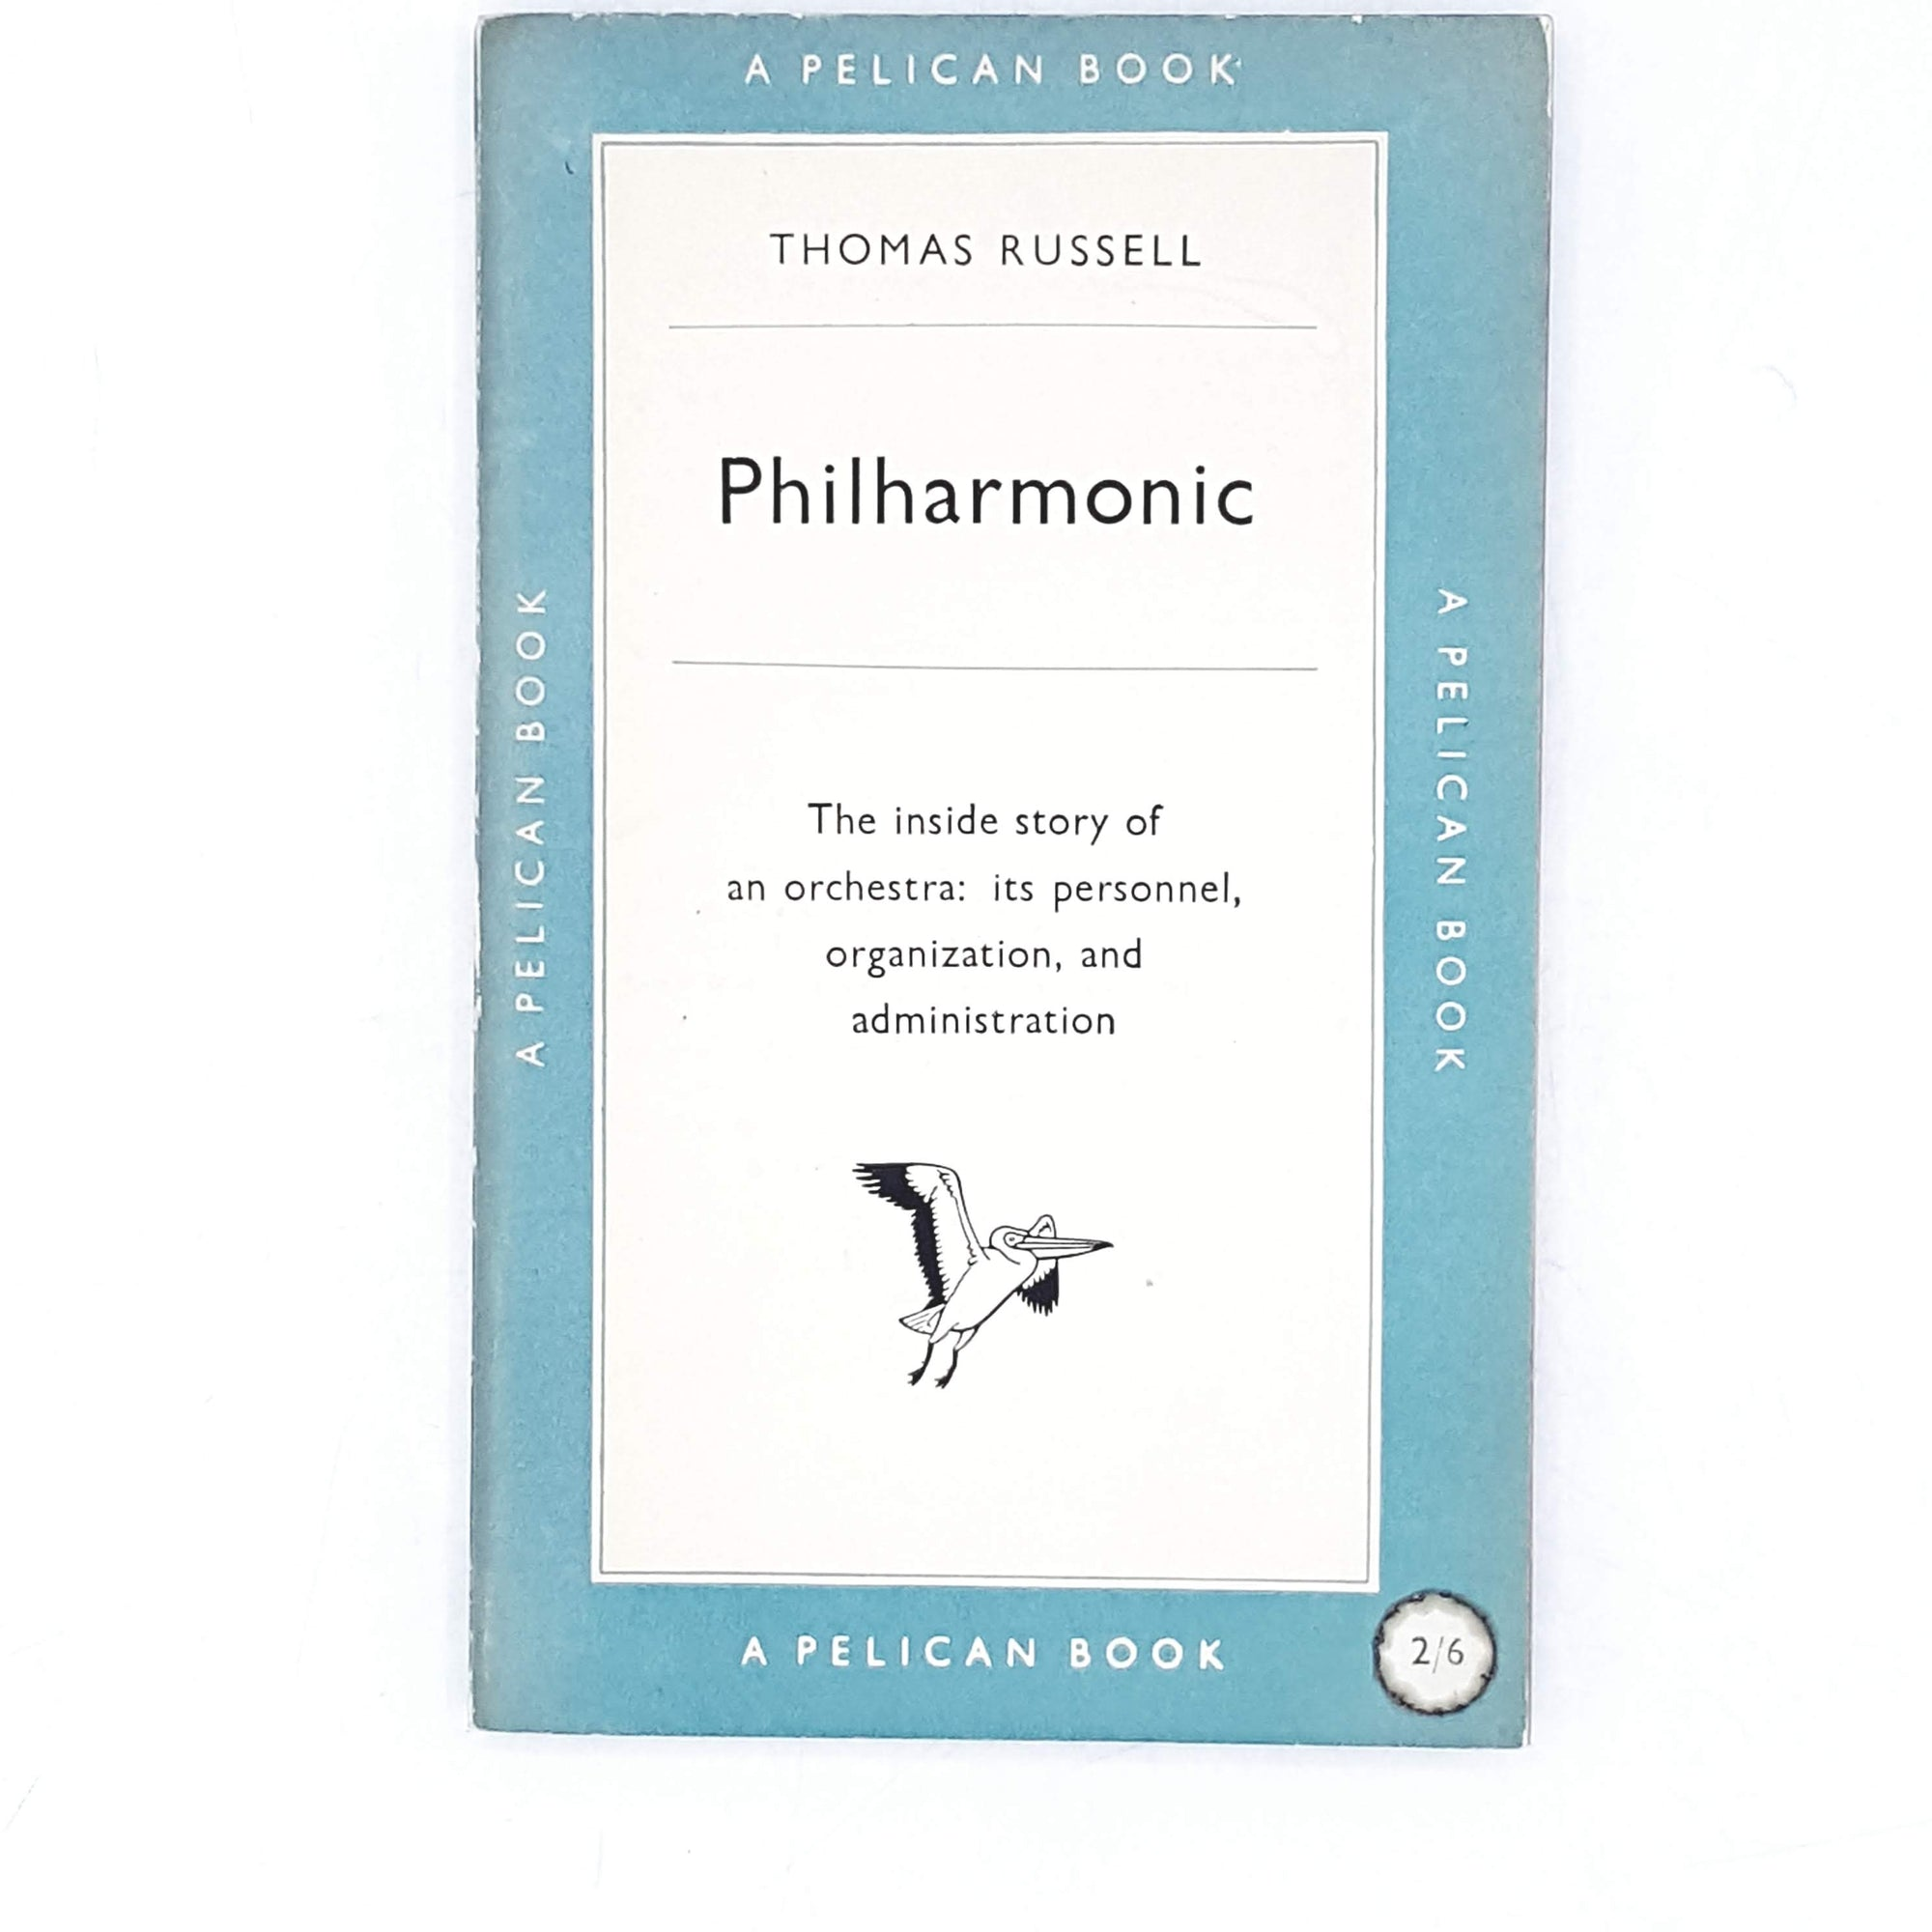 vintage-pelican-philharmonic-by-thomas-russell-1953-antique-pale-blue-country-house-library